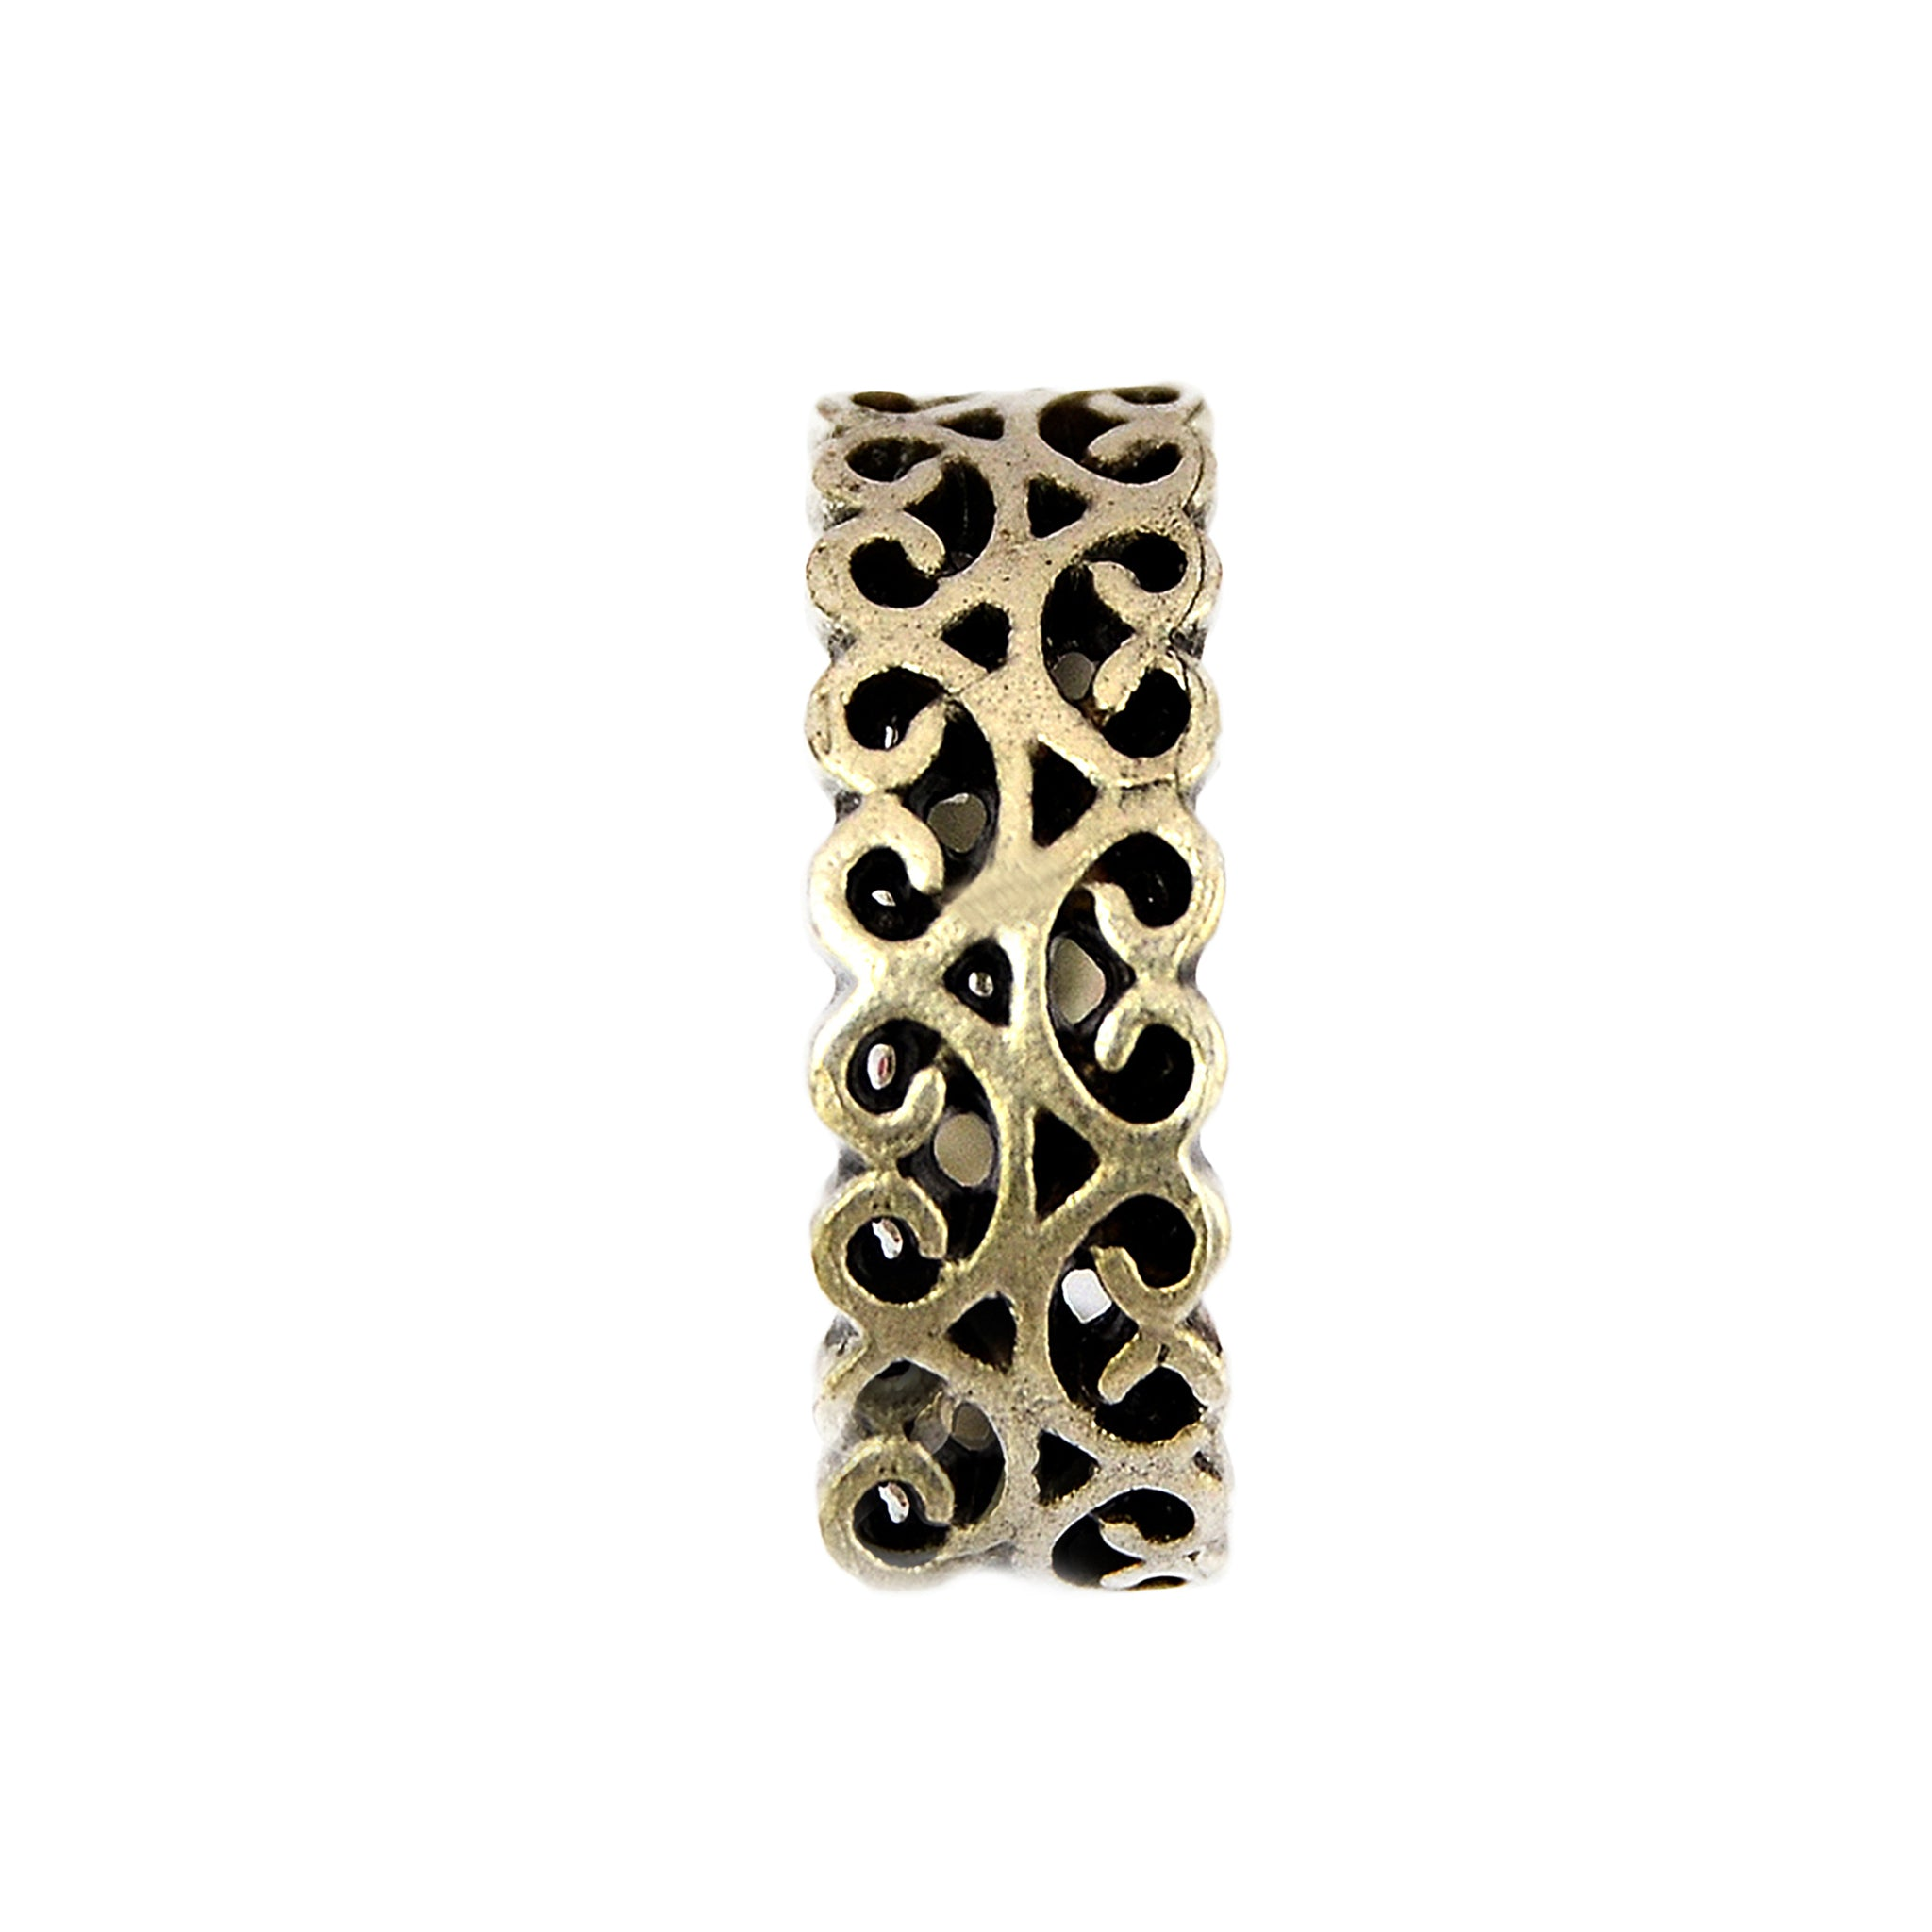 Vintage silver filigree ring